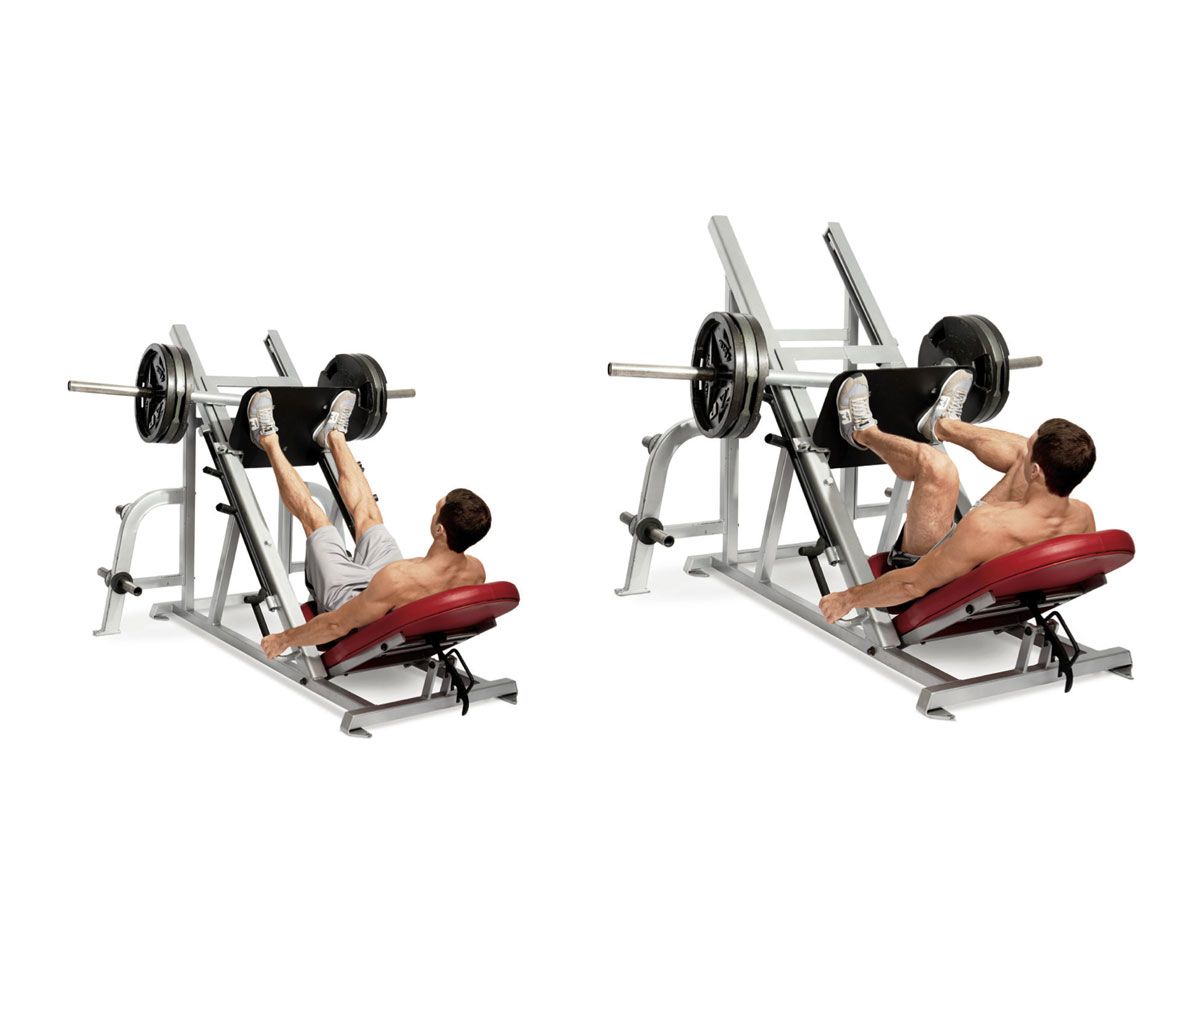 Machine exercises for strength and muscle growth